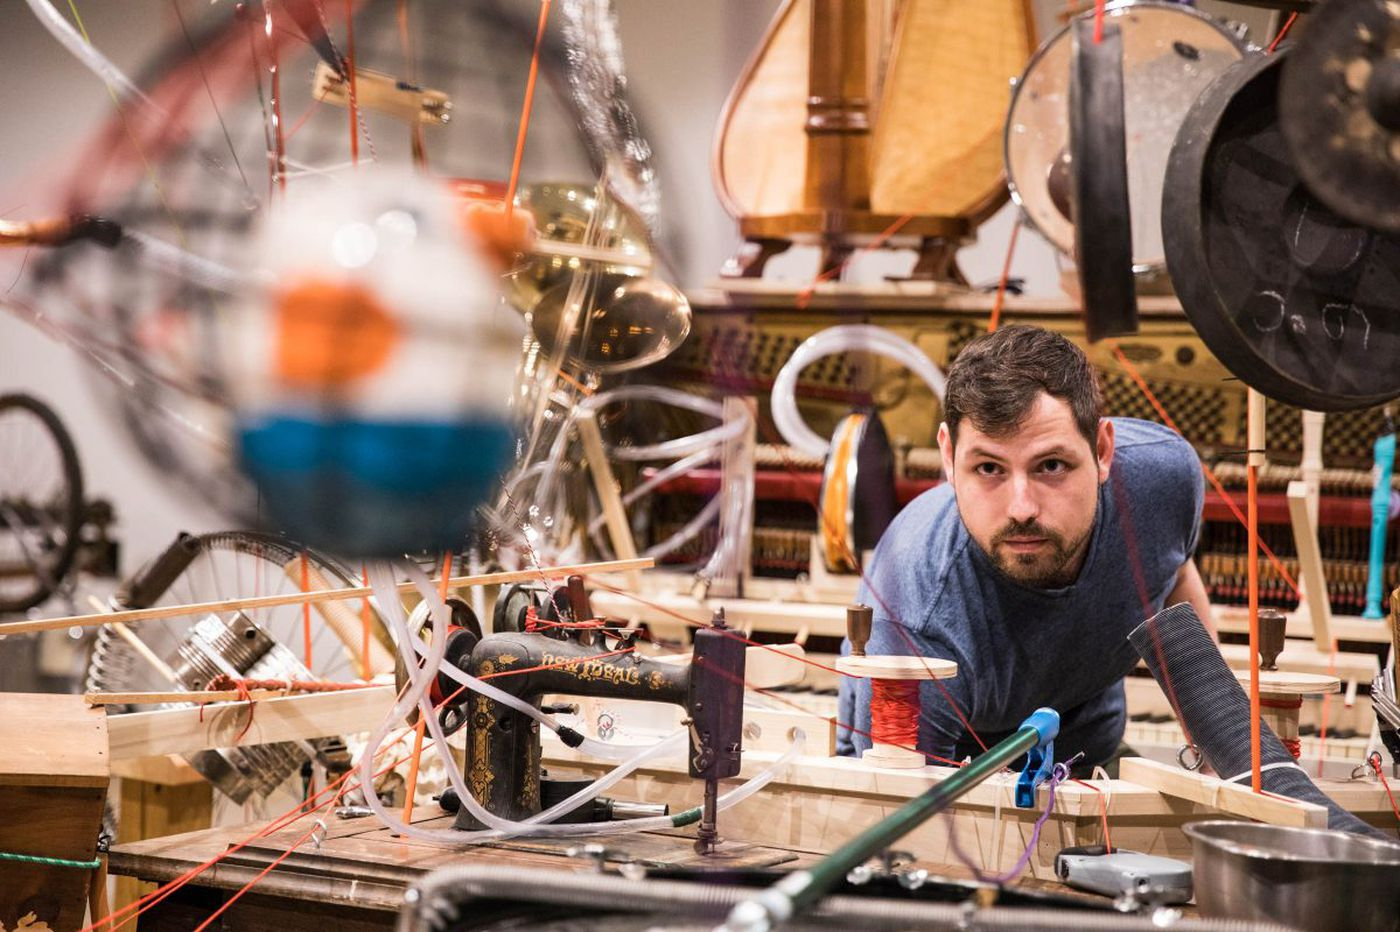 Bowerbird's 2-man music contraption is a hot ticket for 4 remaining Philly shows